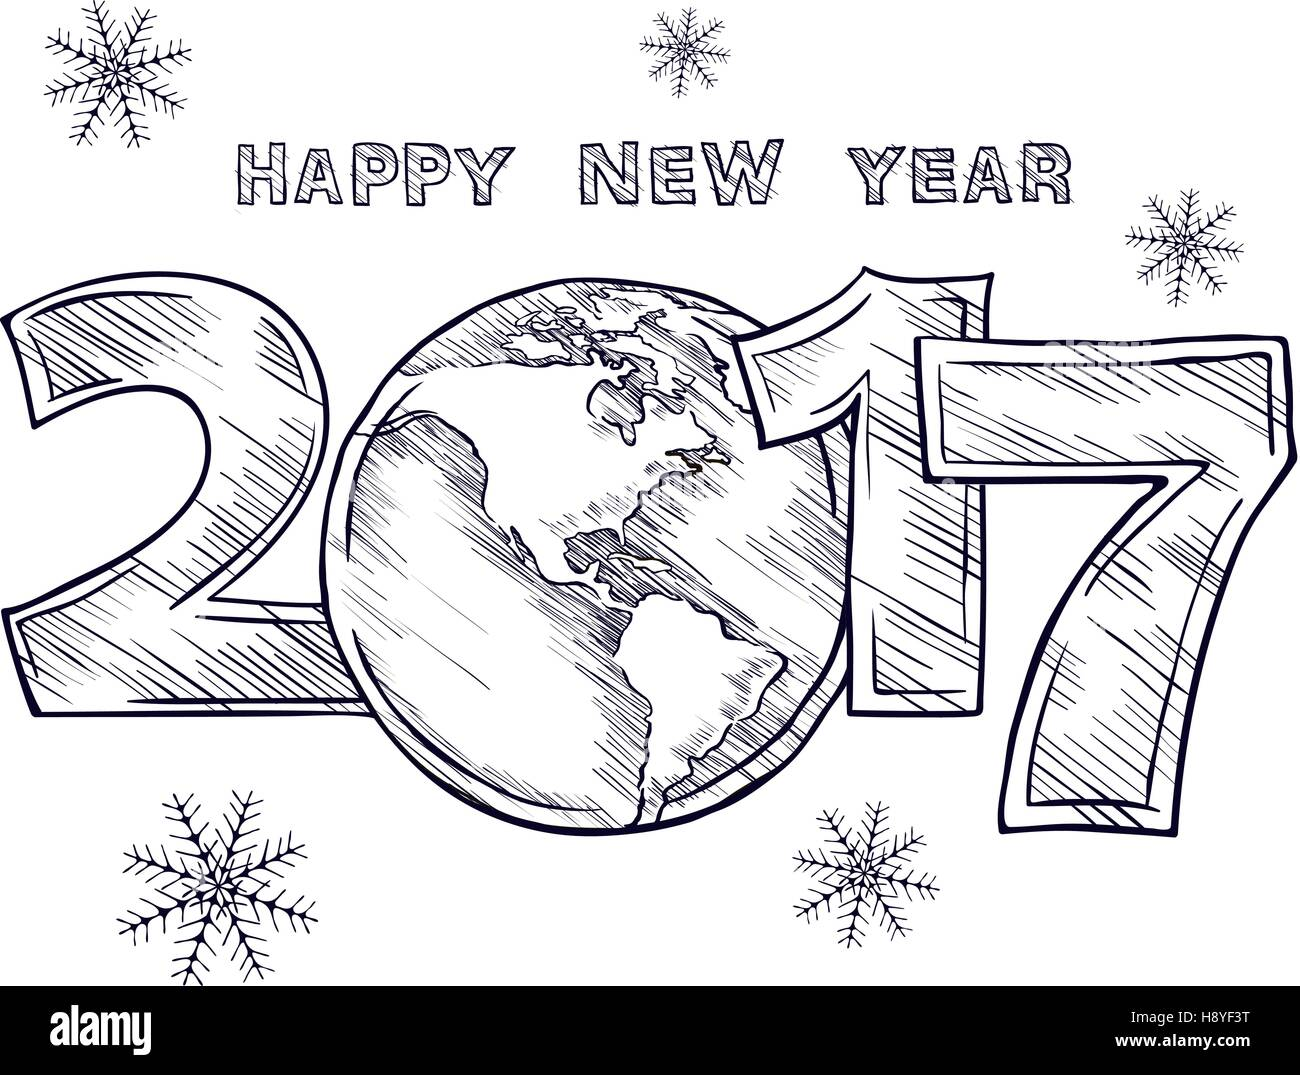 Happy New Year 2017  sketch. Globe outline drawing. Planet Earth. Calendar design typography vector illustration - Stock Vector